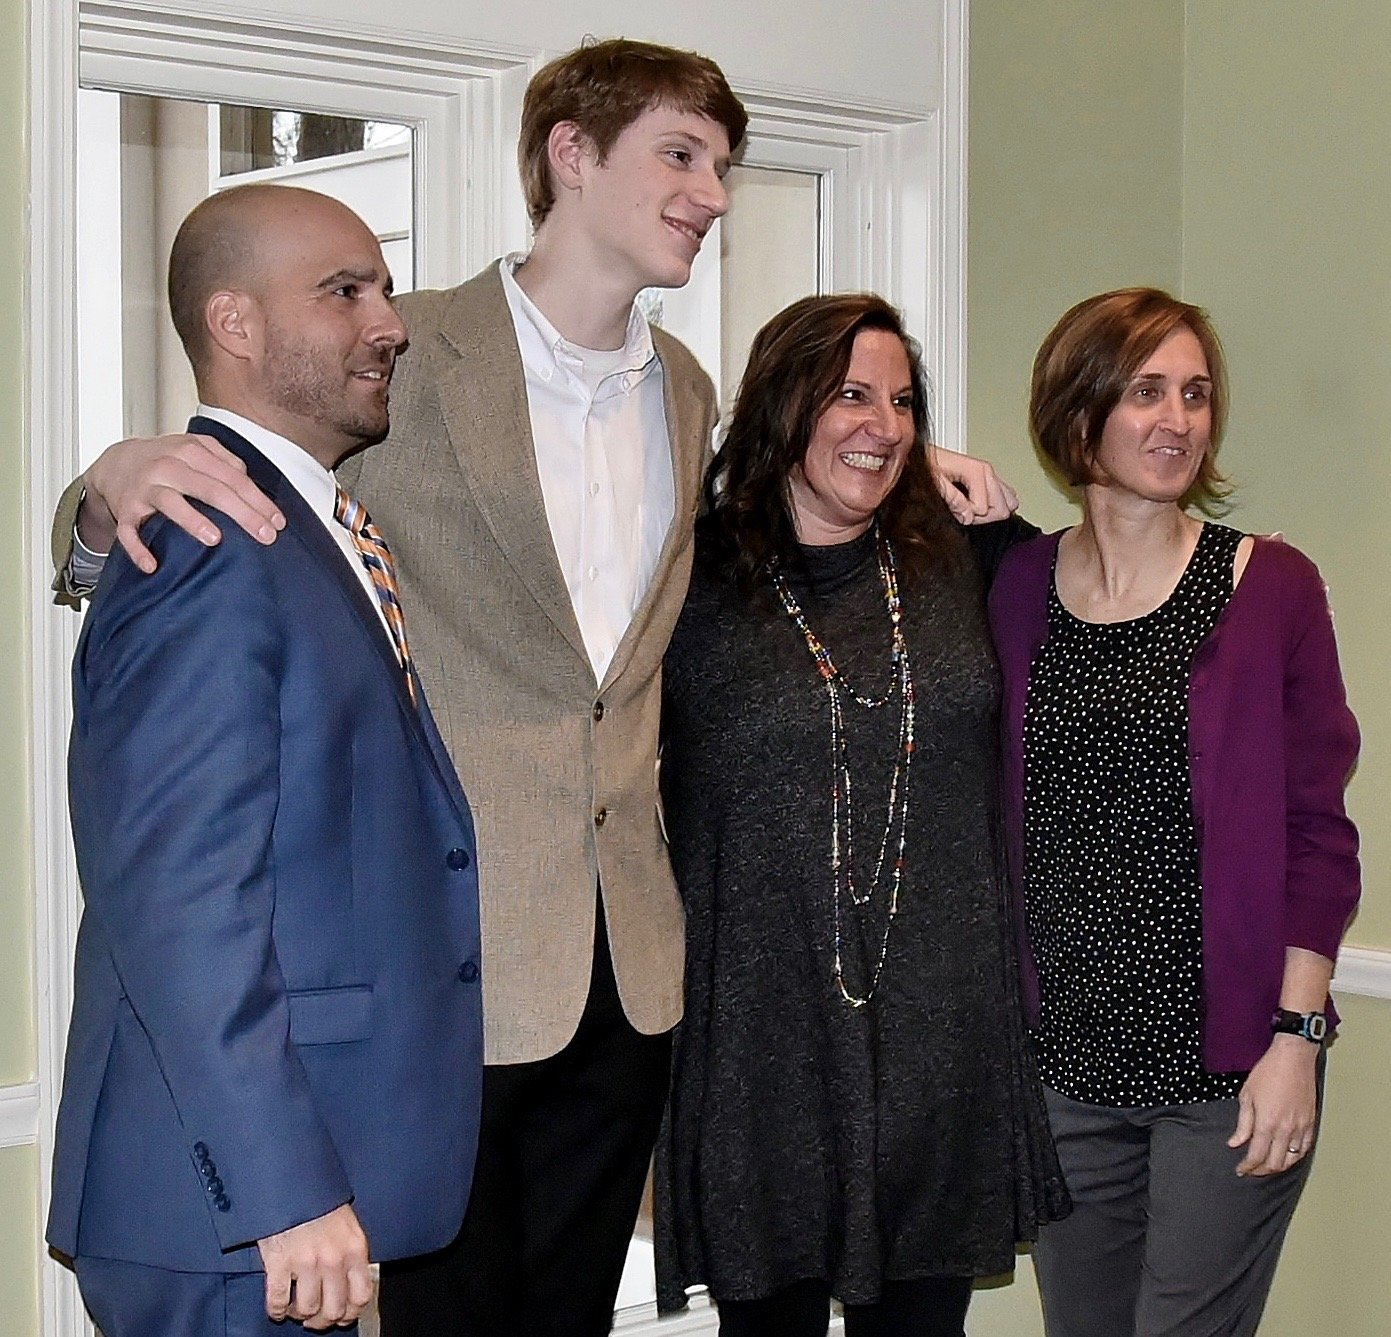 Cartersville High School STAR Student Ethan Boone, second from left, poses for a photo with, from left, Cartersville City Schools Superintendent Dr. Marc Feuerbach, Boone's STAR Teacher Valerie Veiga, and CHS principal Shelley Tierce Feb. 20.